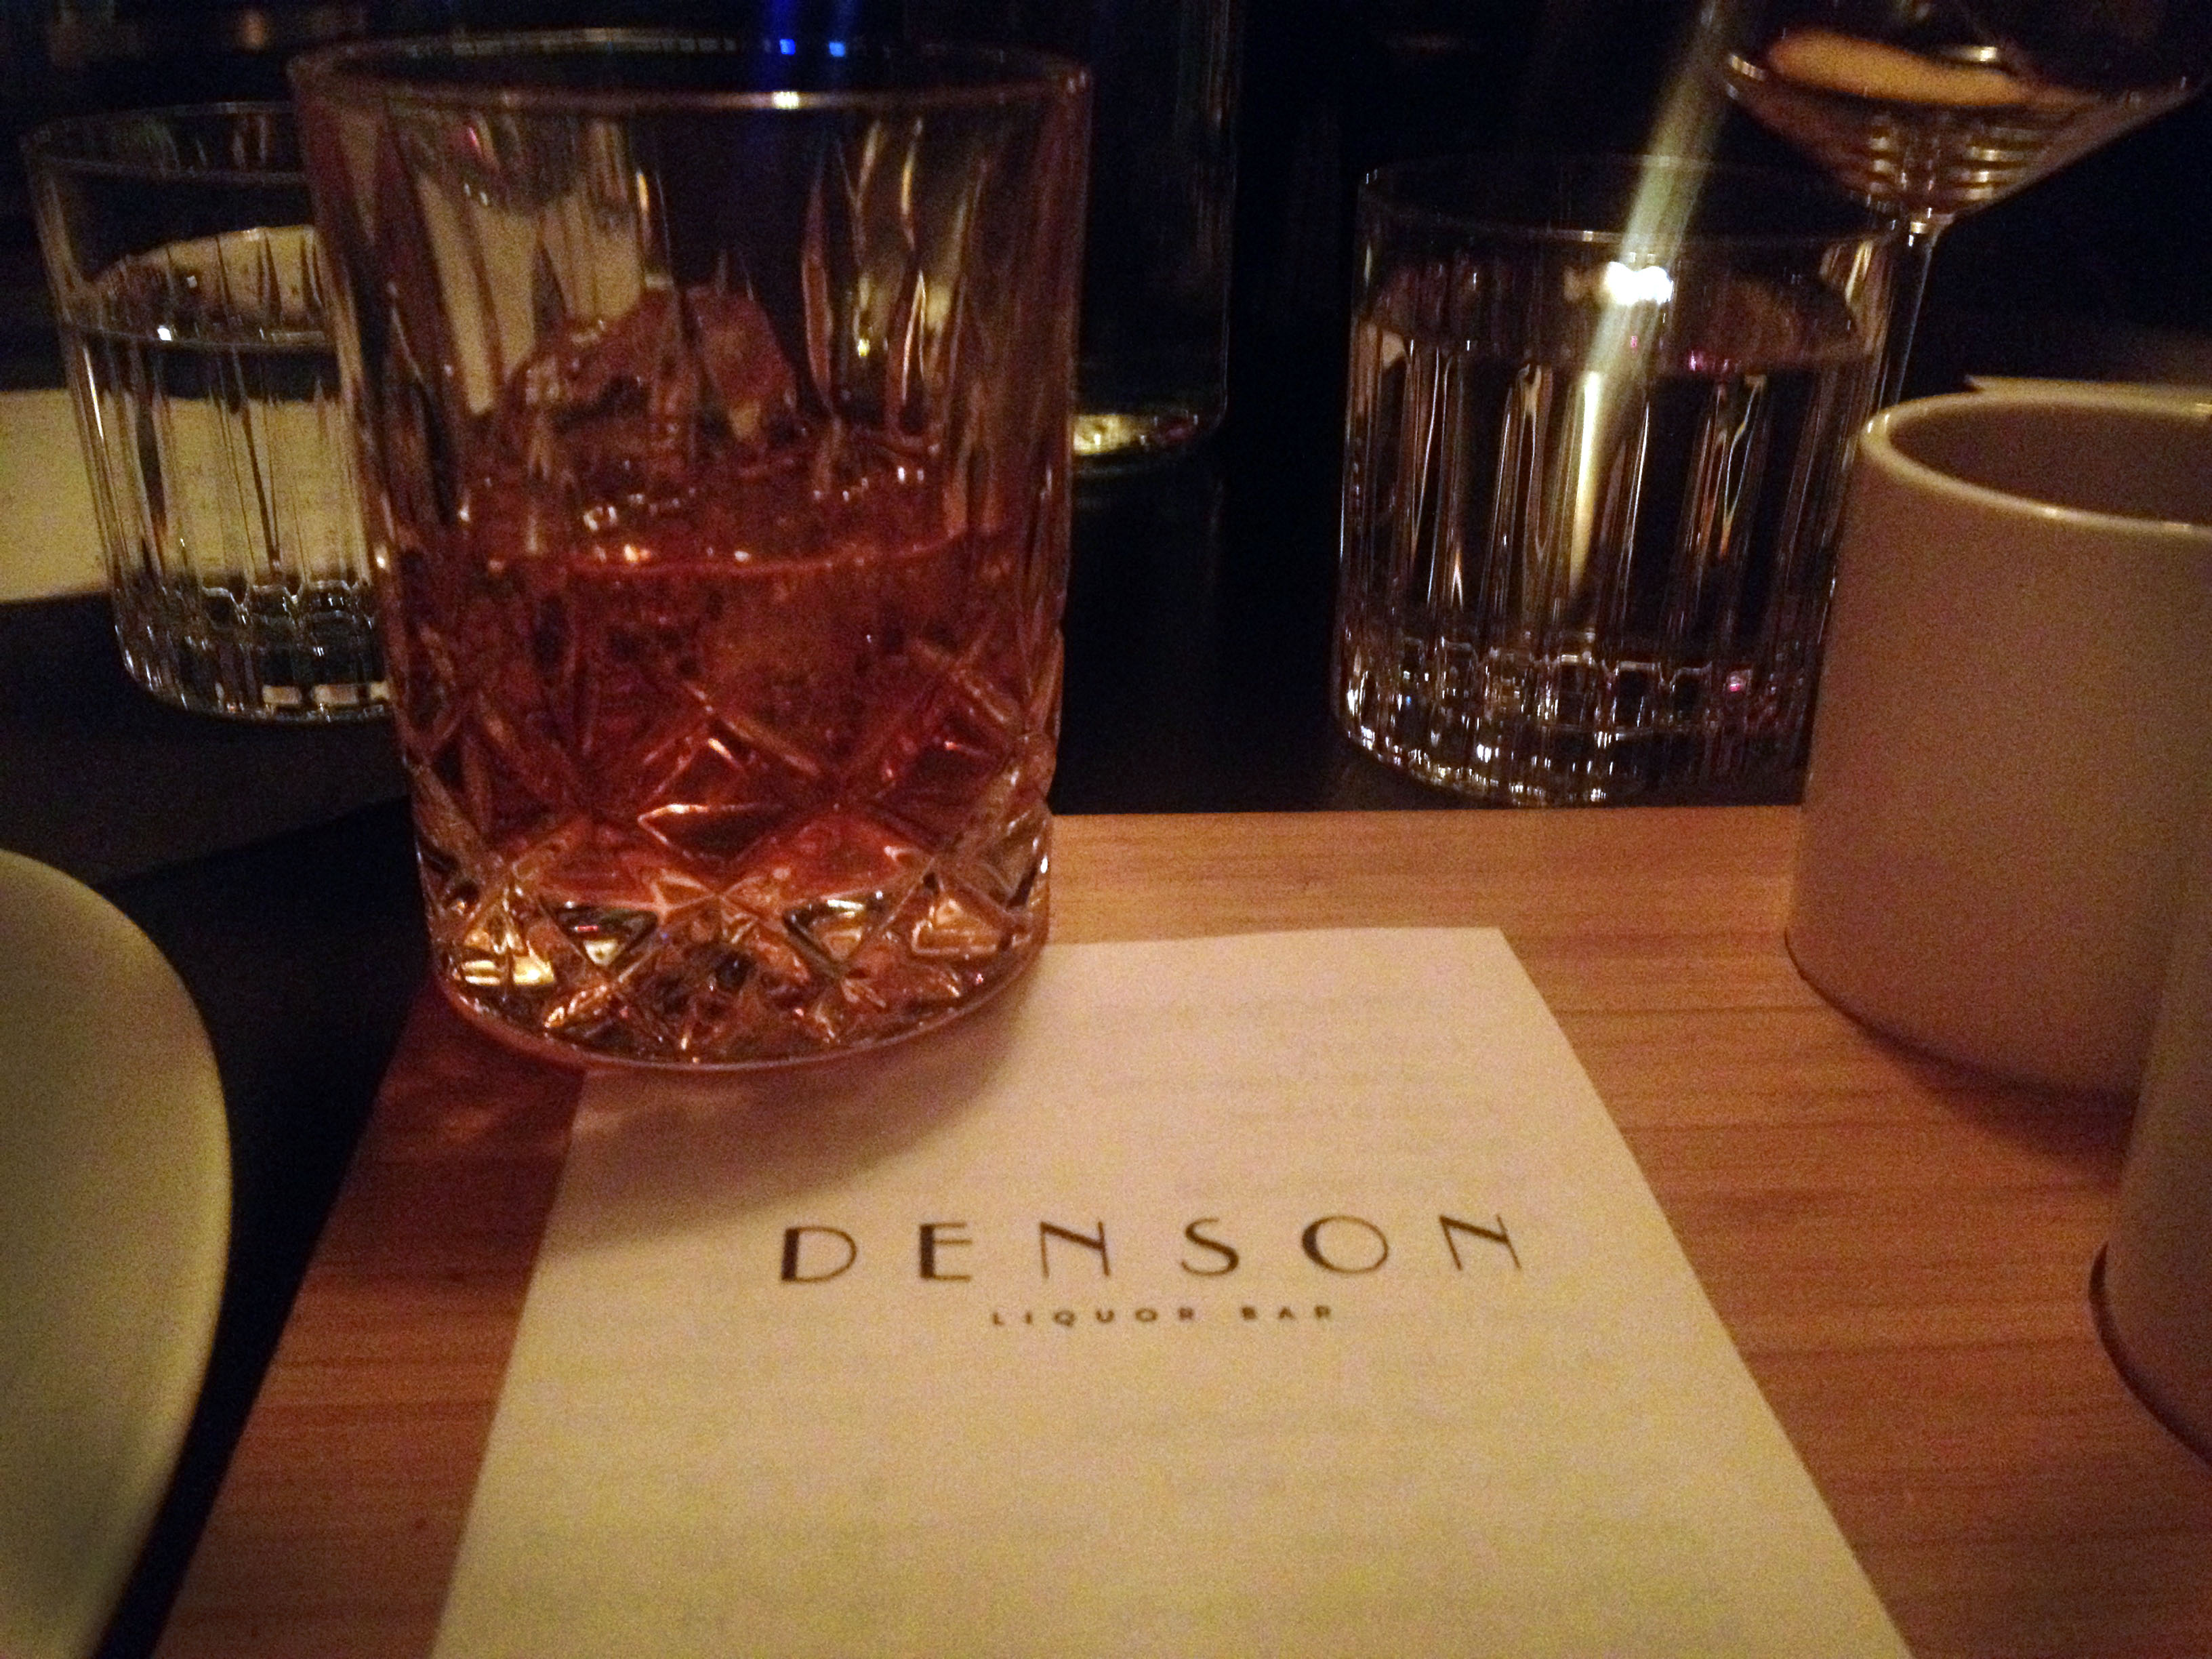 Denson Liquor Bar Debuts